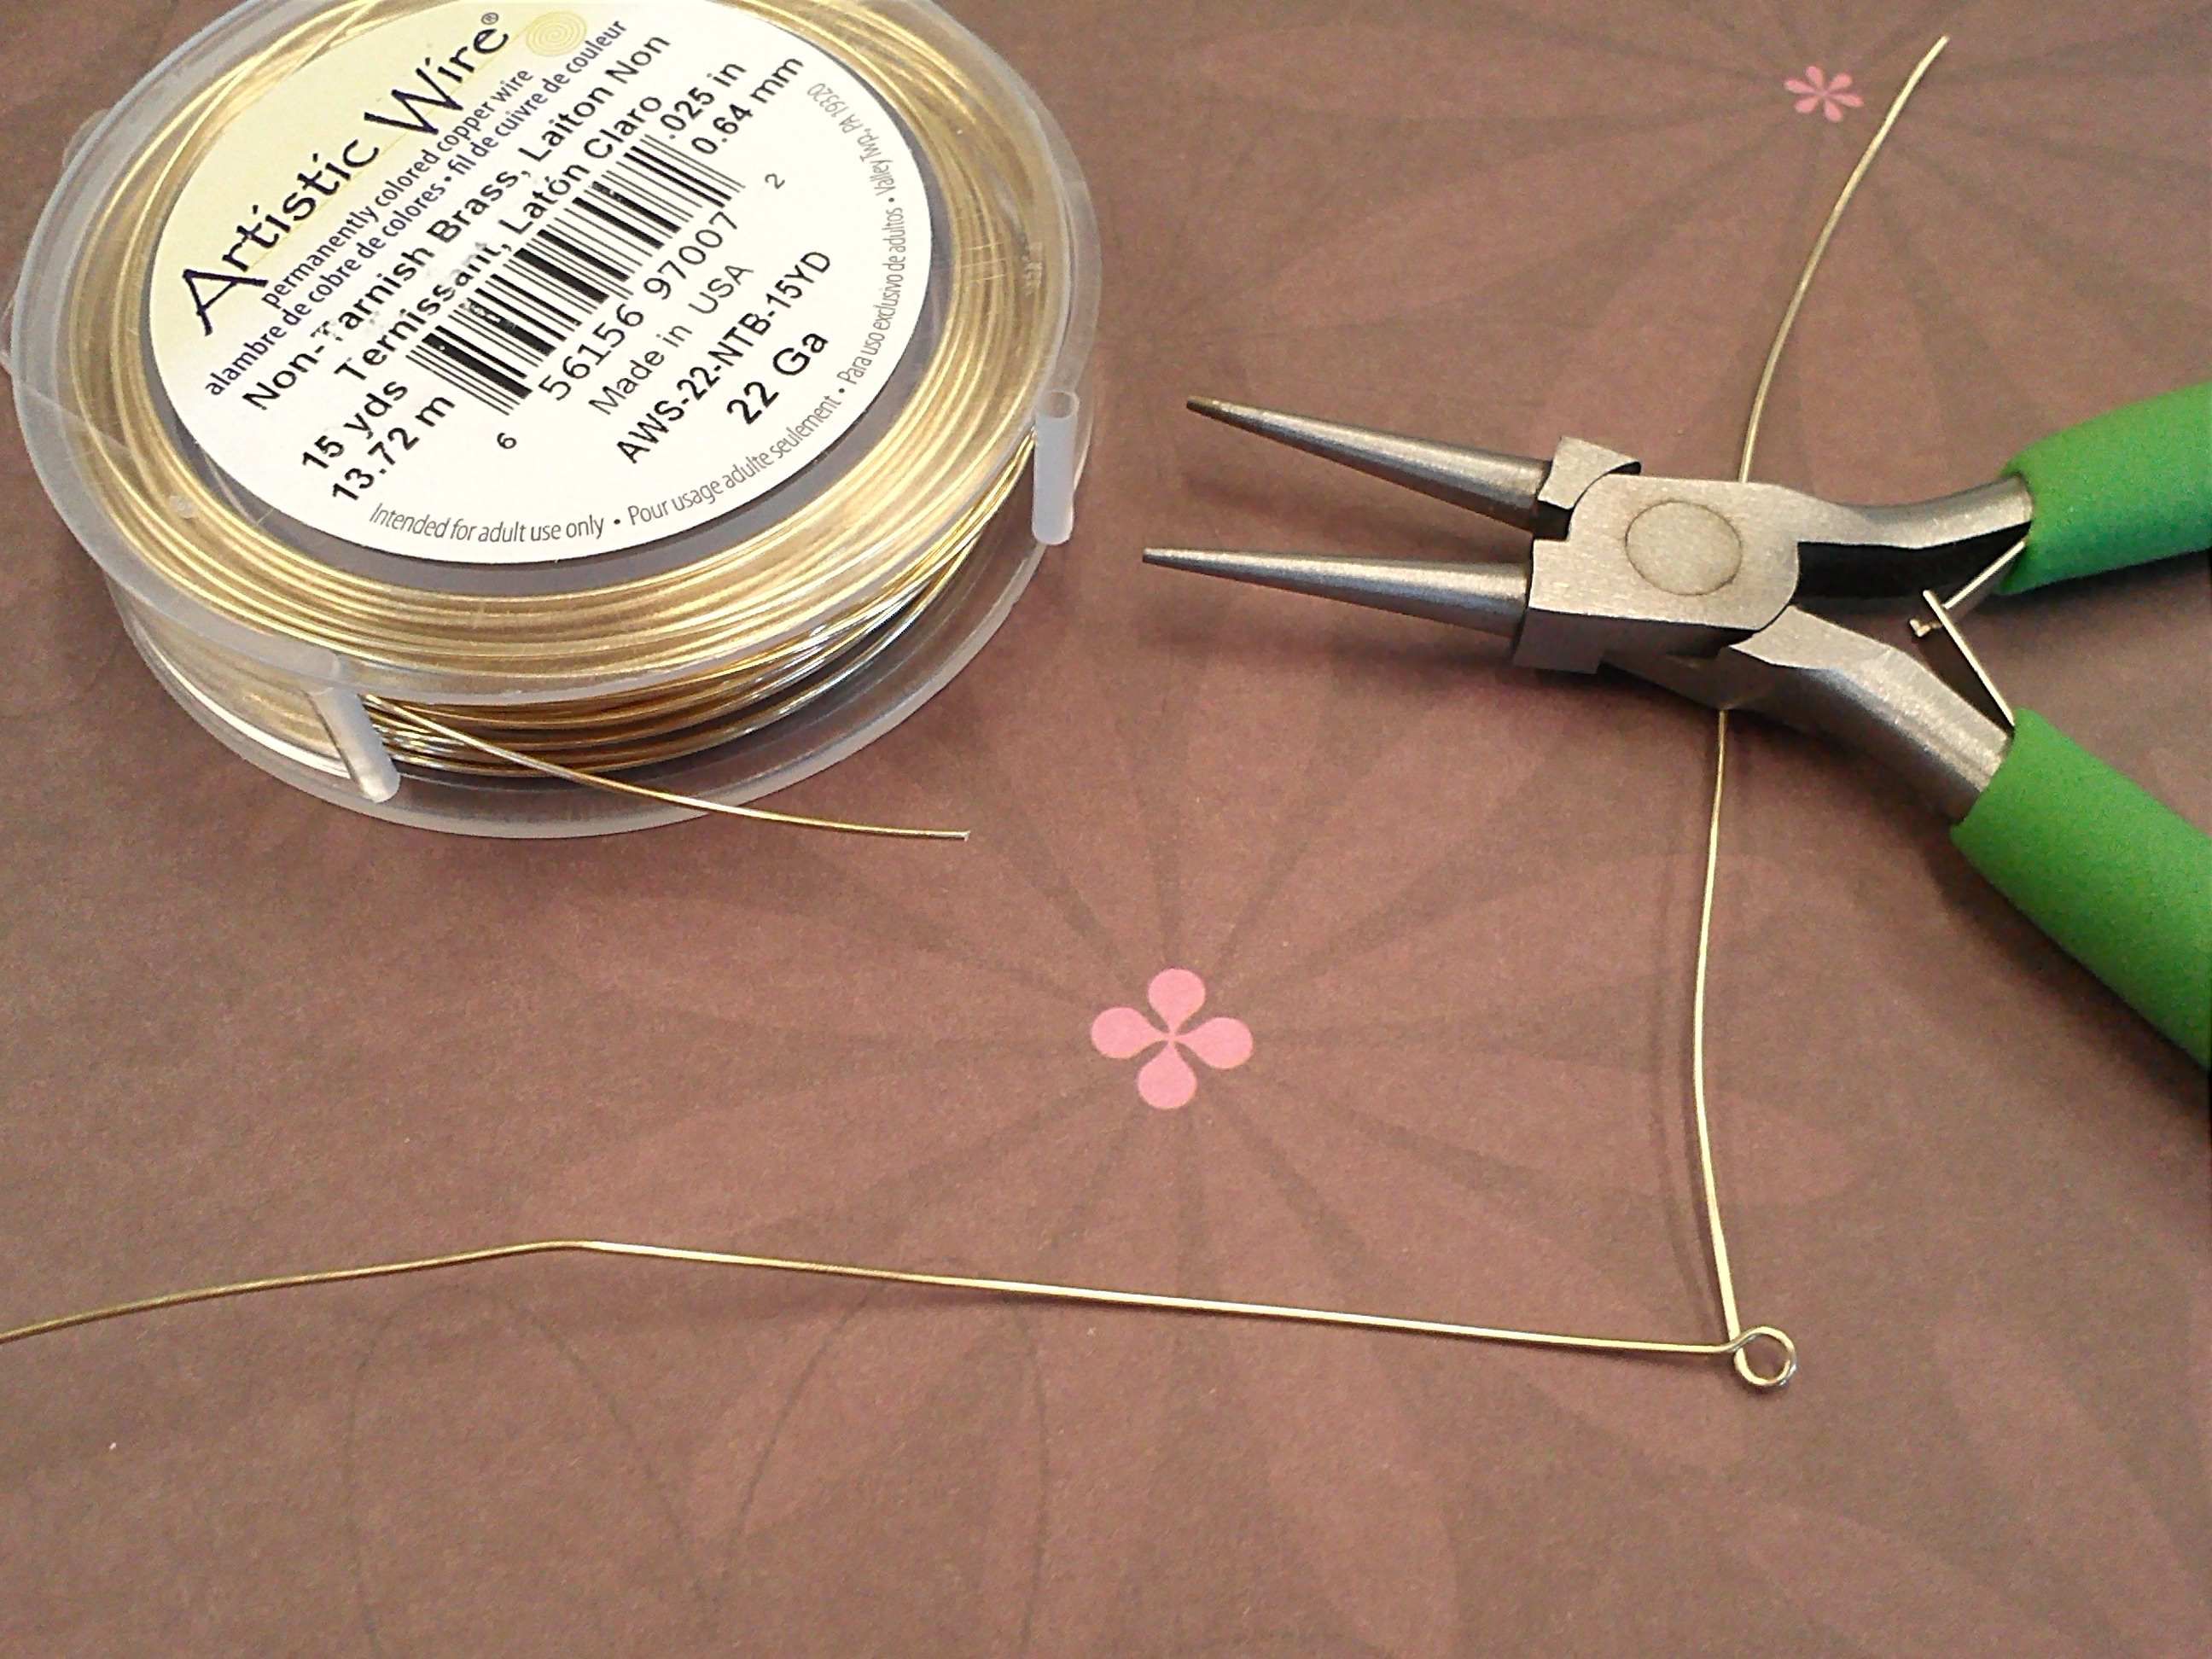 Step 1 of How To Make a Herringbone Wirewrap: Cut wire, and make a loop at one end.